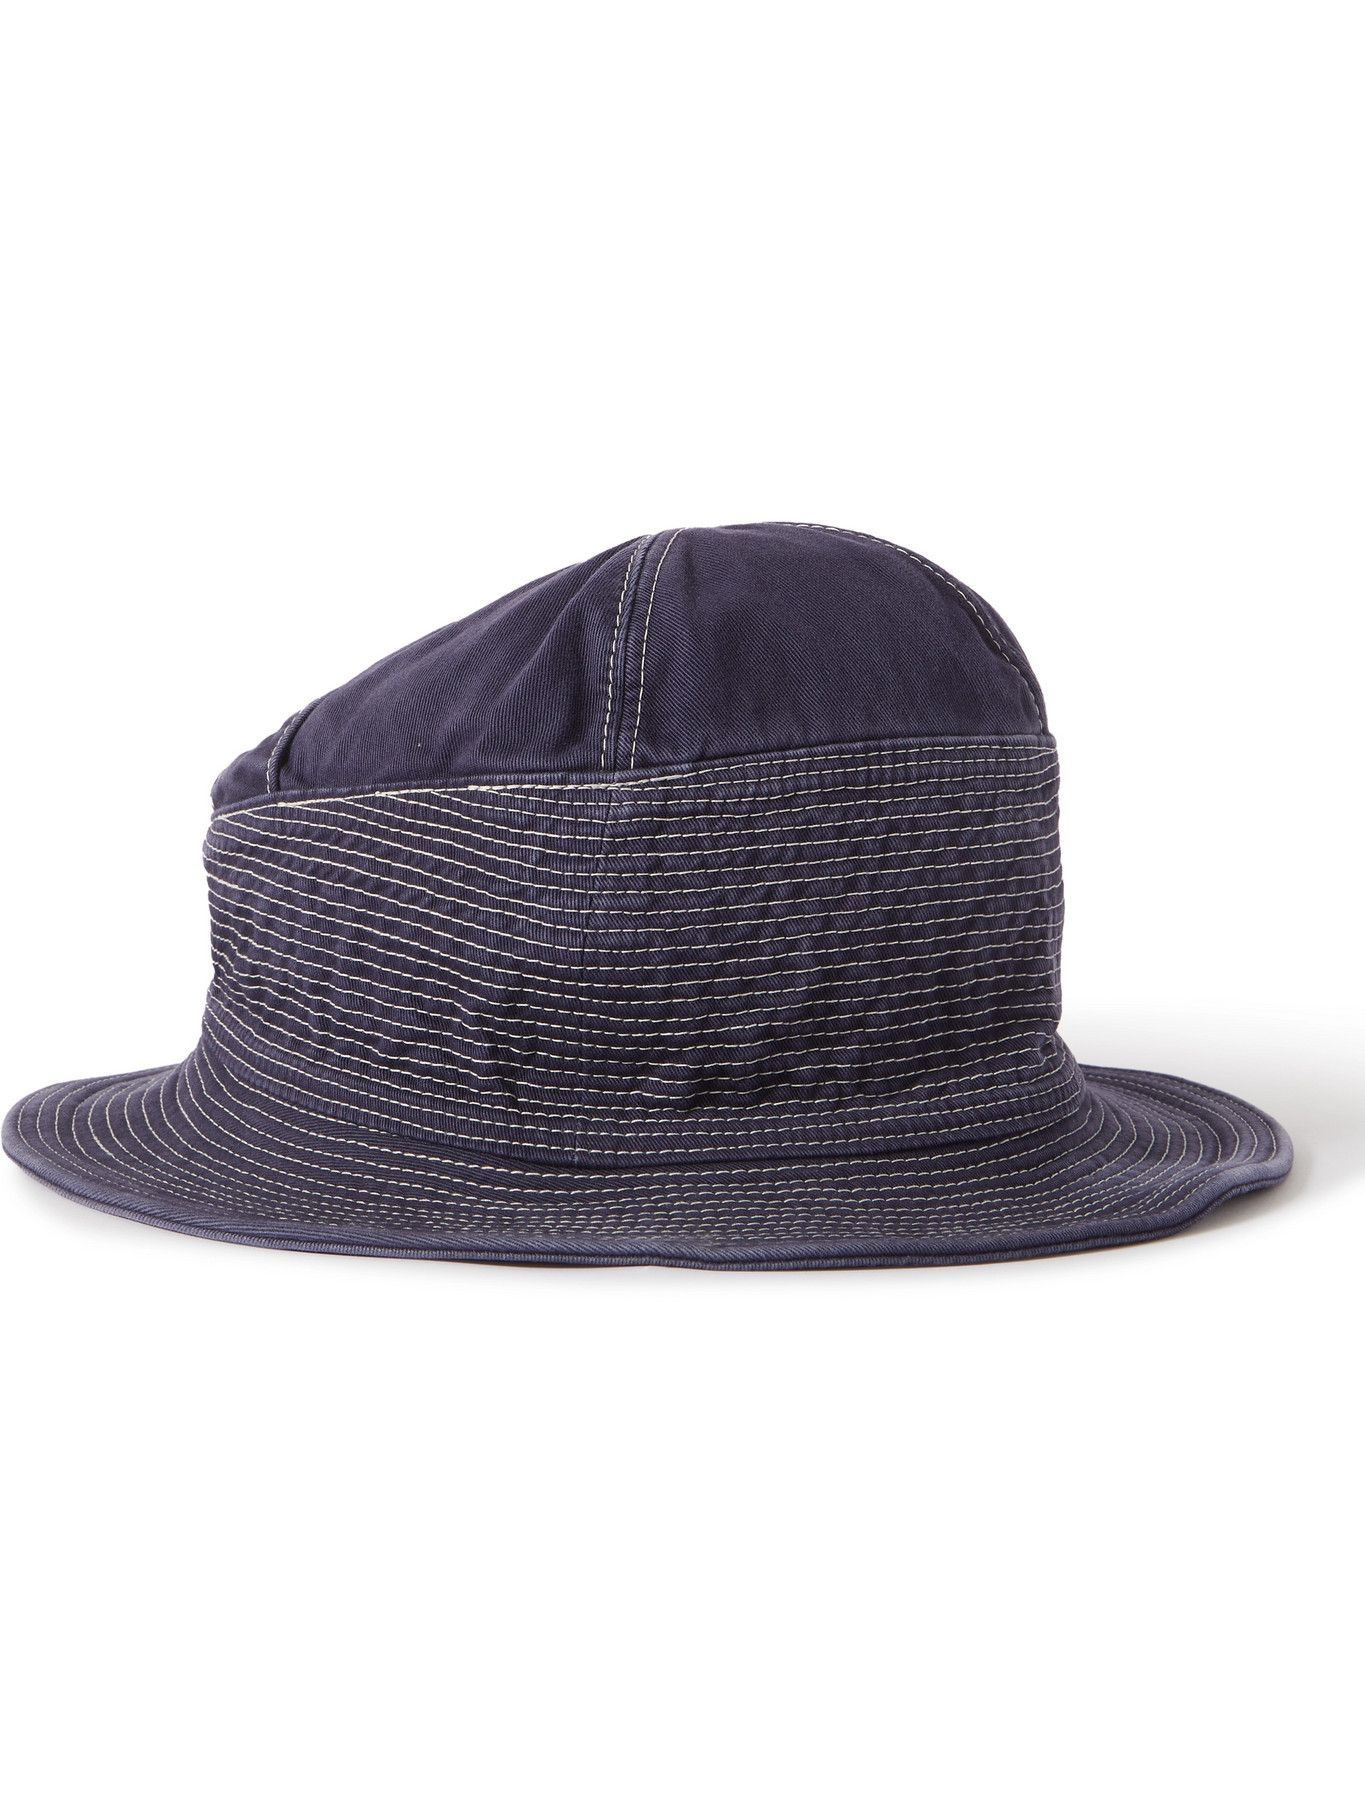 KAPITAL - Quilted Cotton Bucket Hat